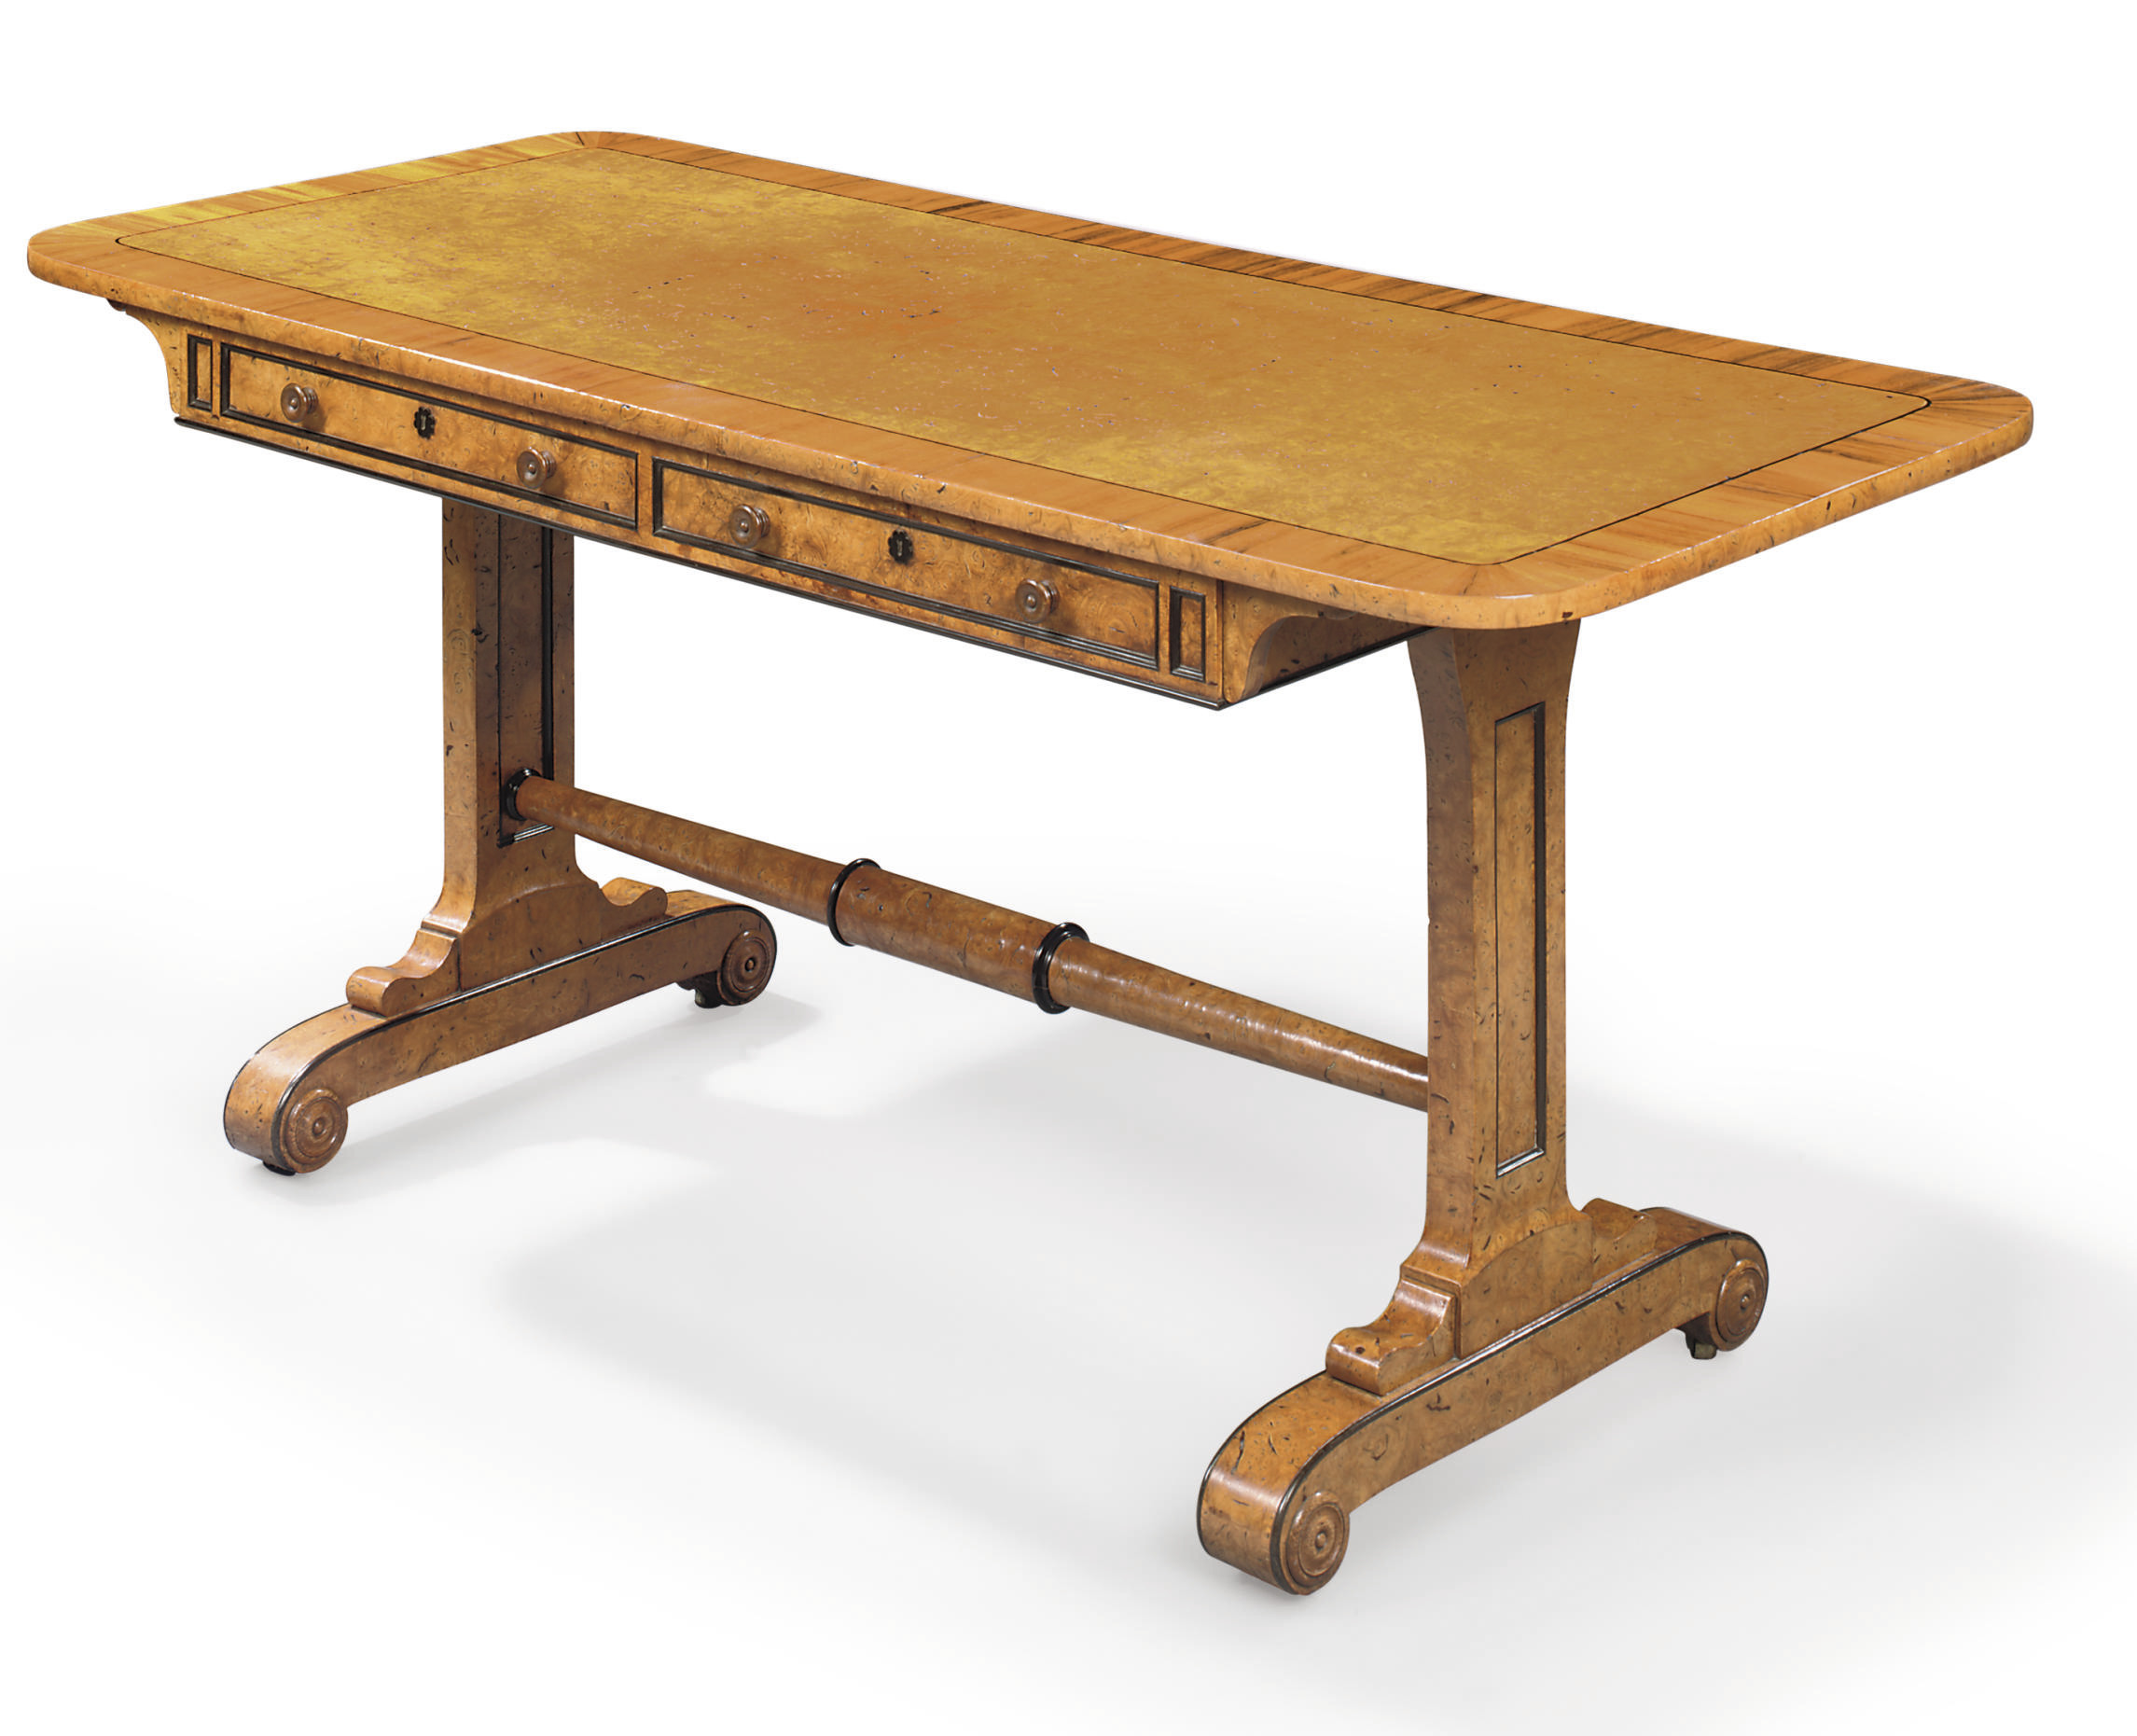 A REGENCY BROWN OAK, GONCALO A